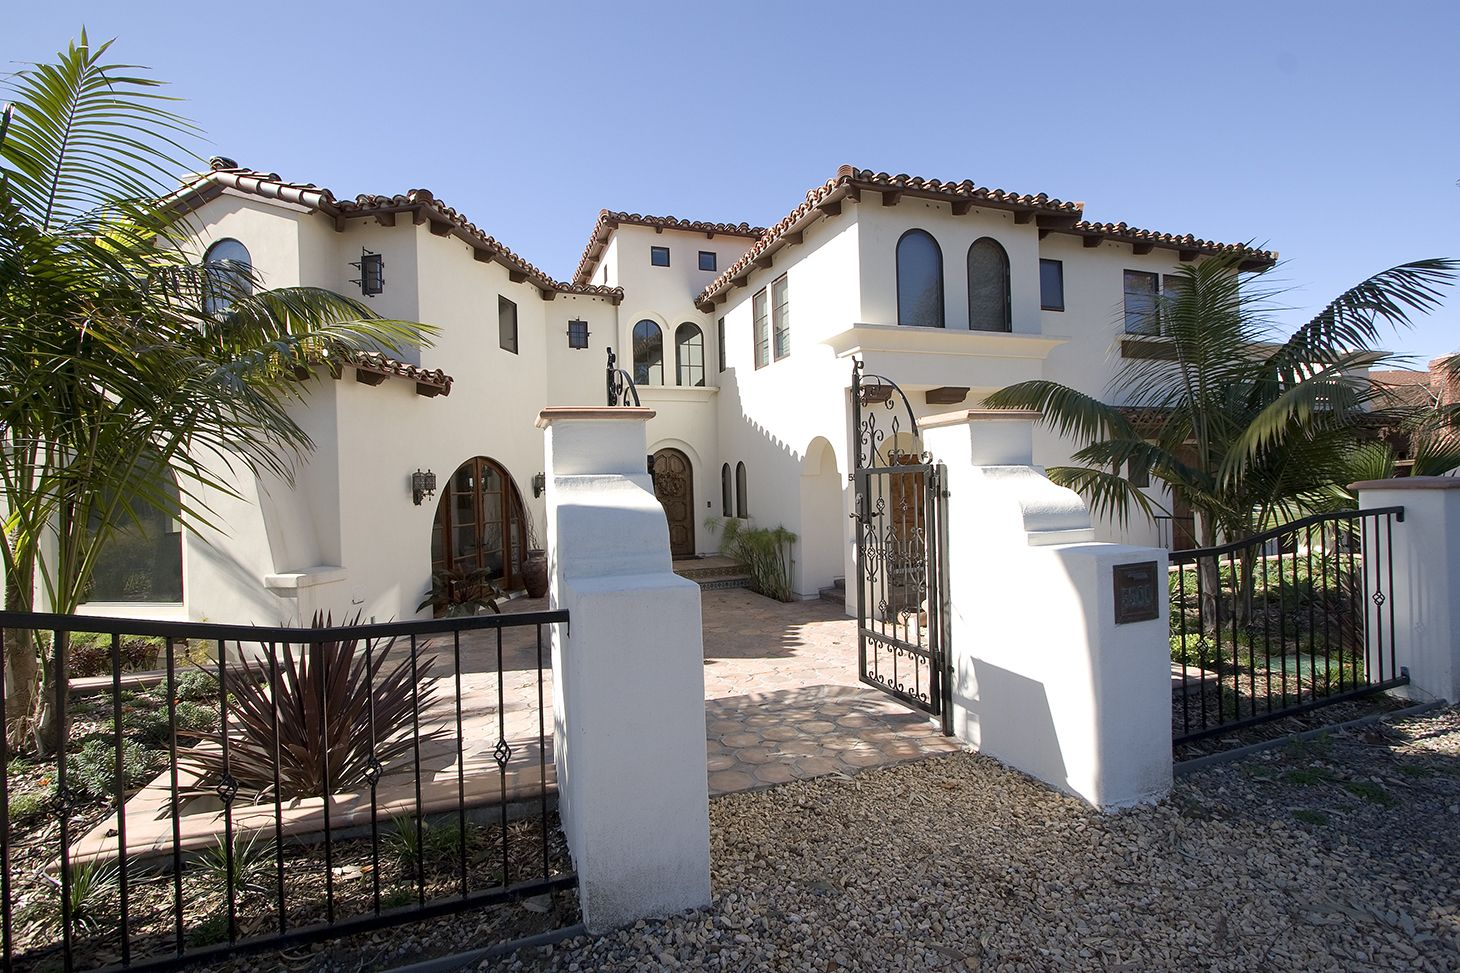 California style | Architecture | Pinterest | Residential roofing ...